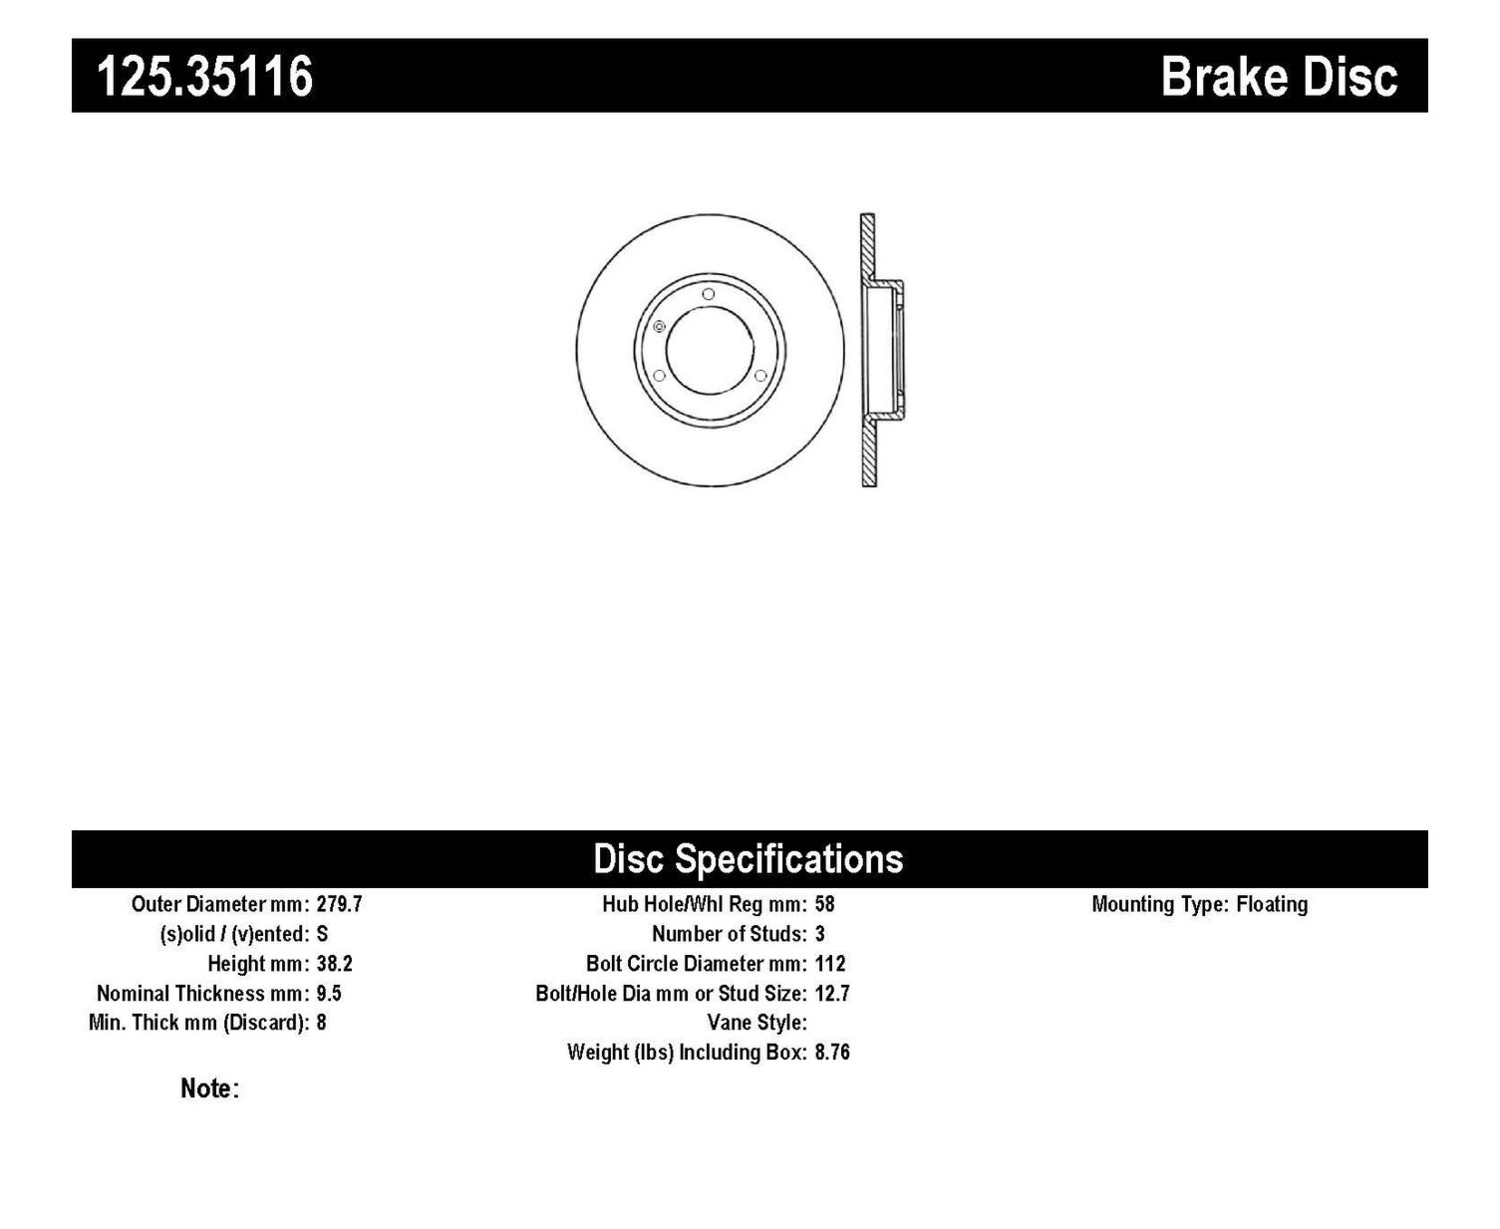 Imagen de Rotor del Disco de freno High Carbon Alloy Disc-Preferred para Smart Fortwo 2009 Marca CENTRIC PARTS Número de Parte 125.35116